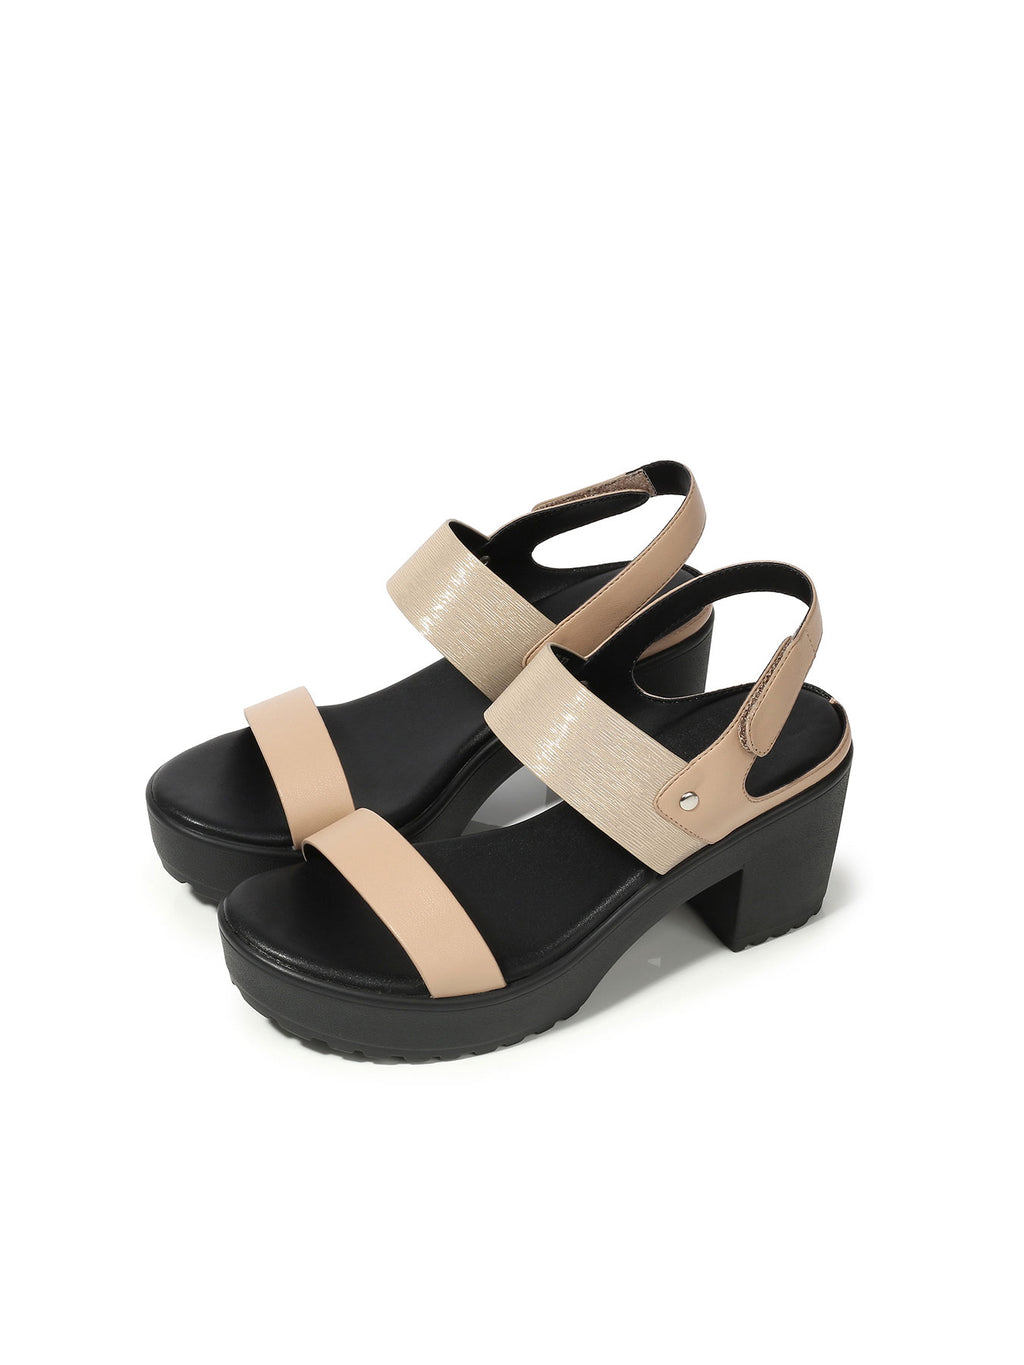 Larrie Pink Velcro Strap Fashionable Heeled Sandals